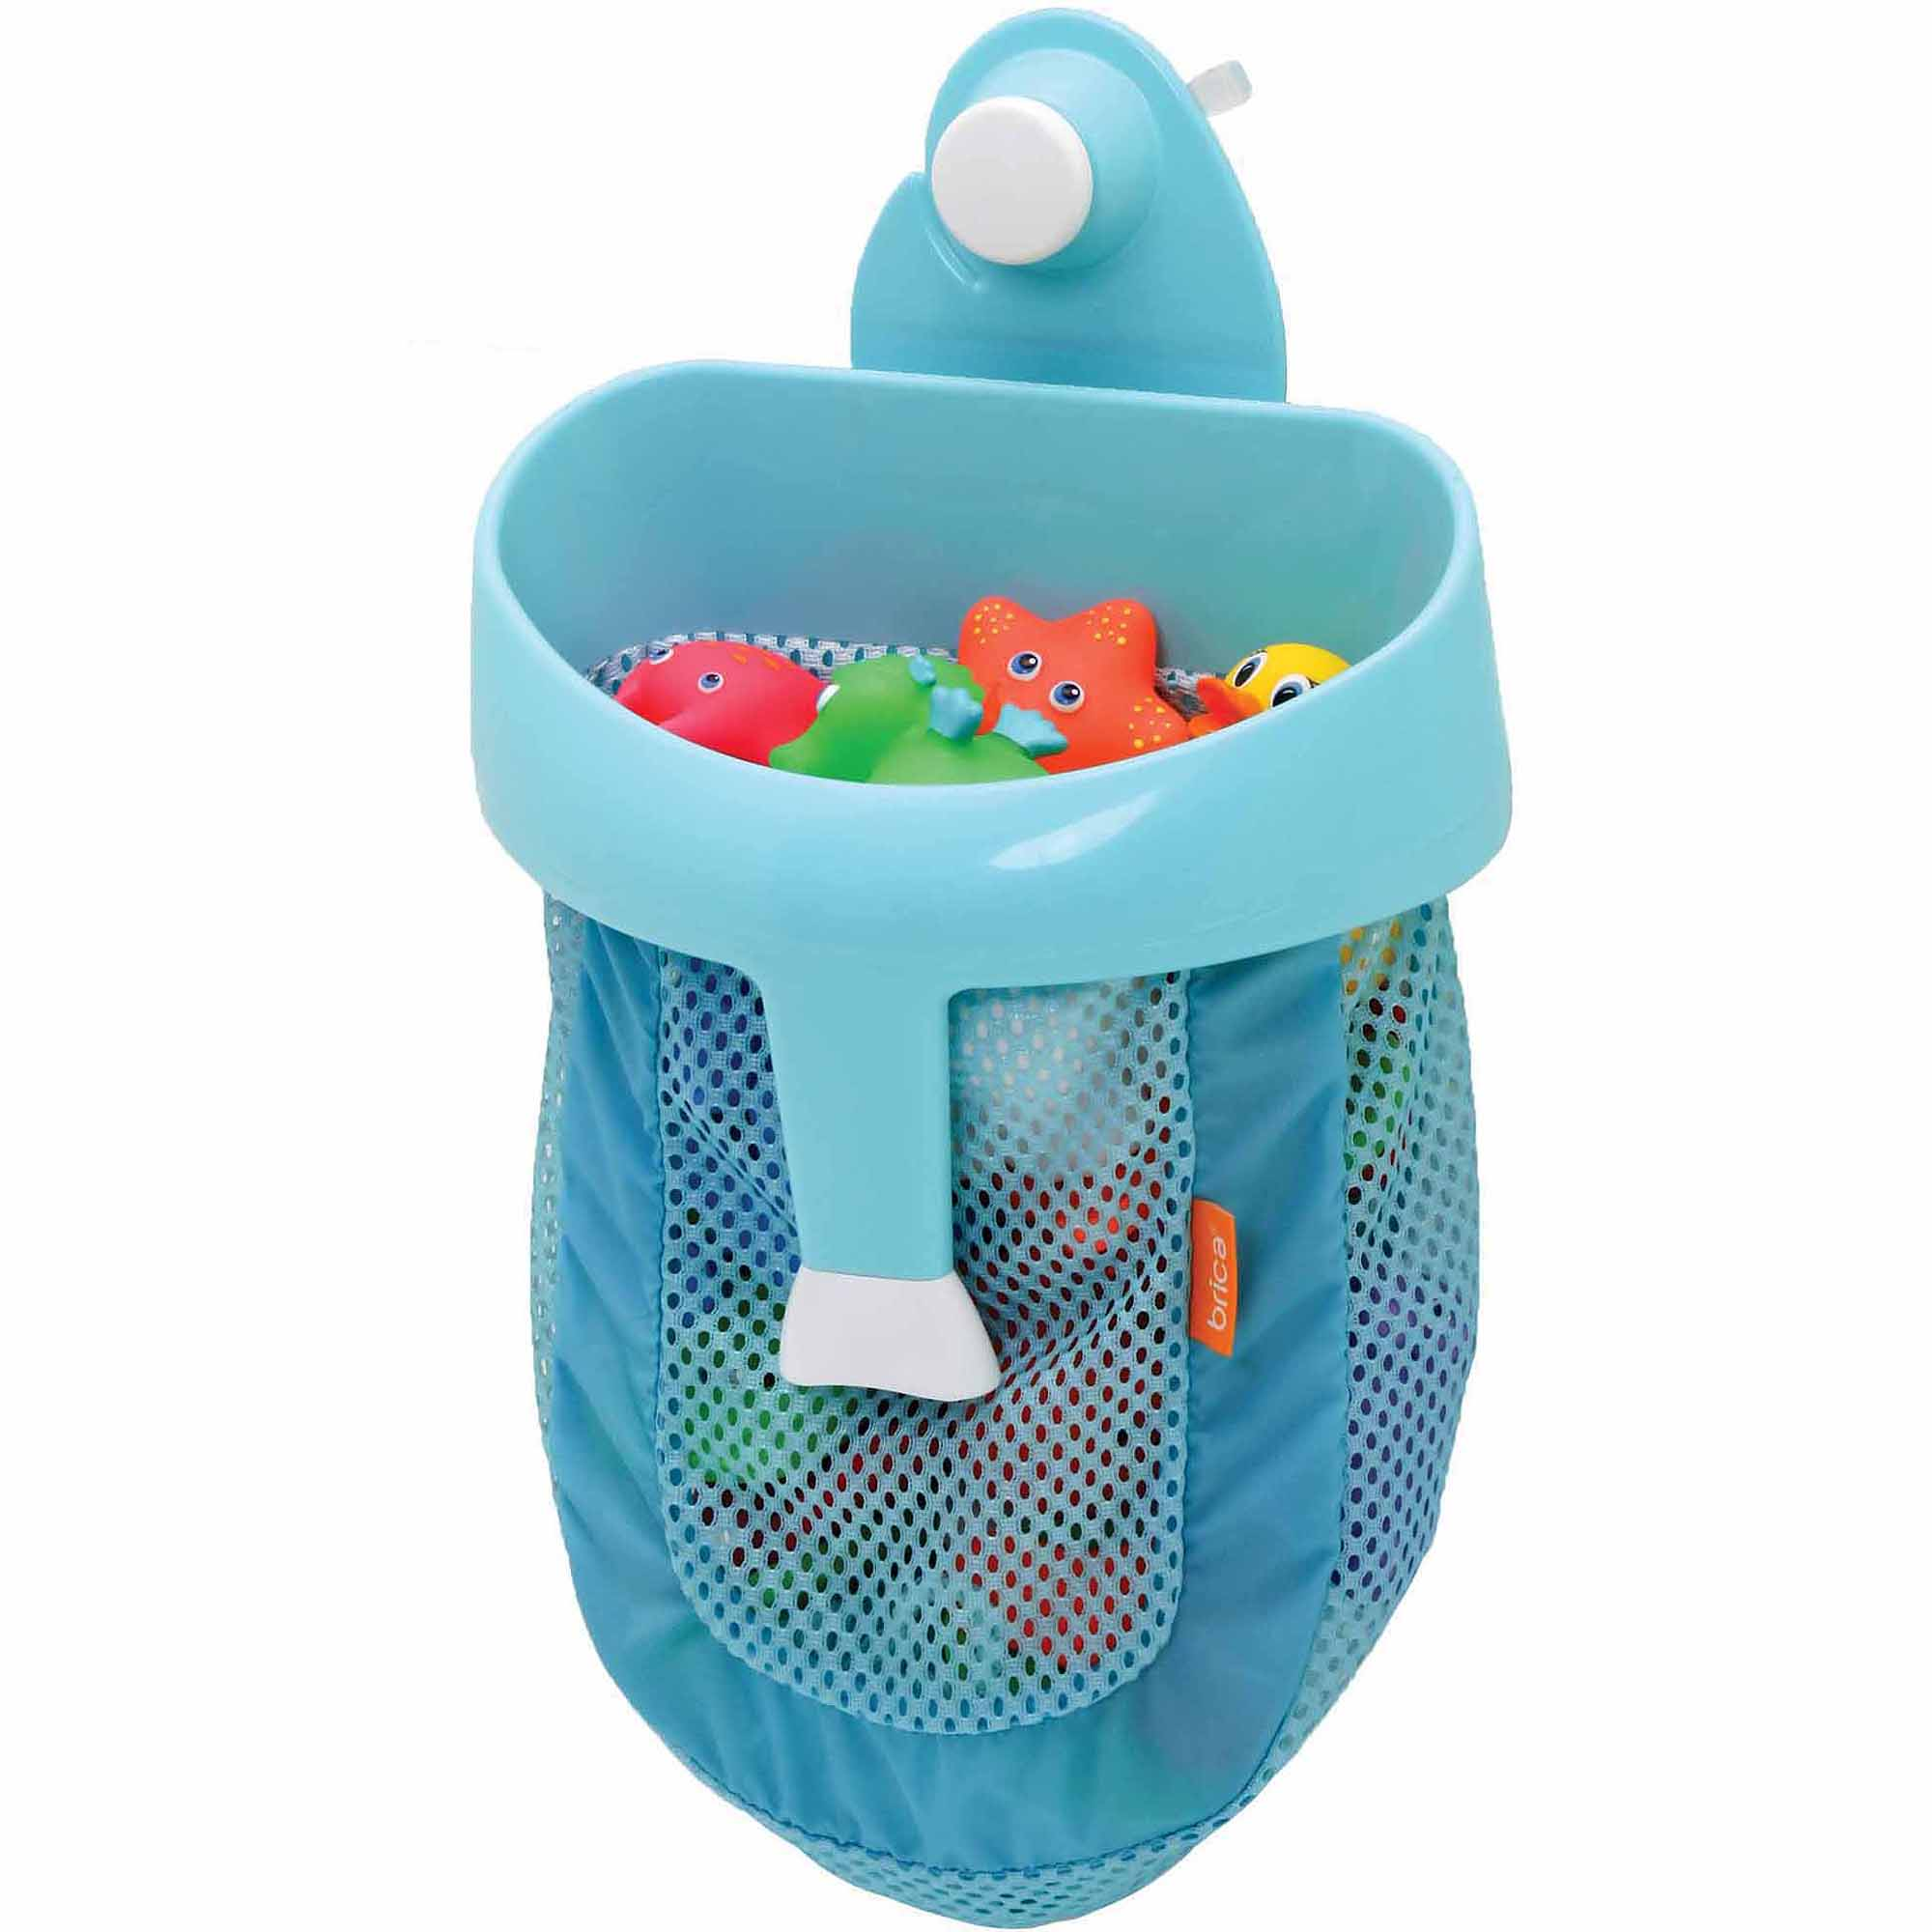 Munchkin Super Scoop Bath Toy Organizer - Walmart.com